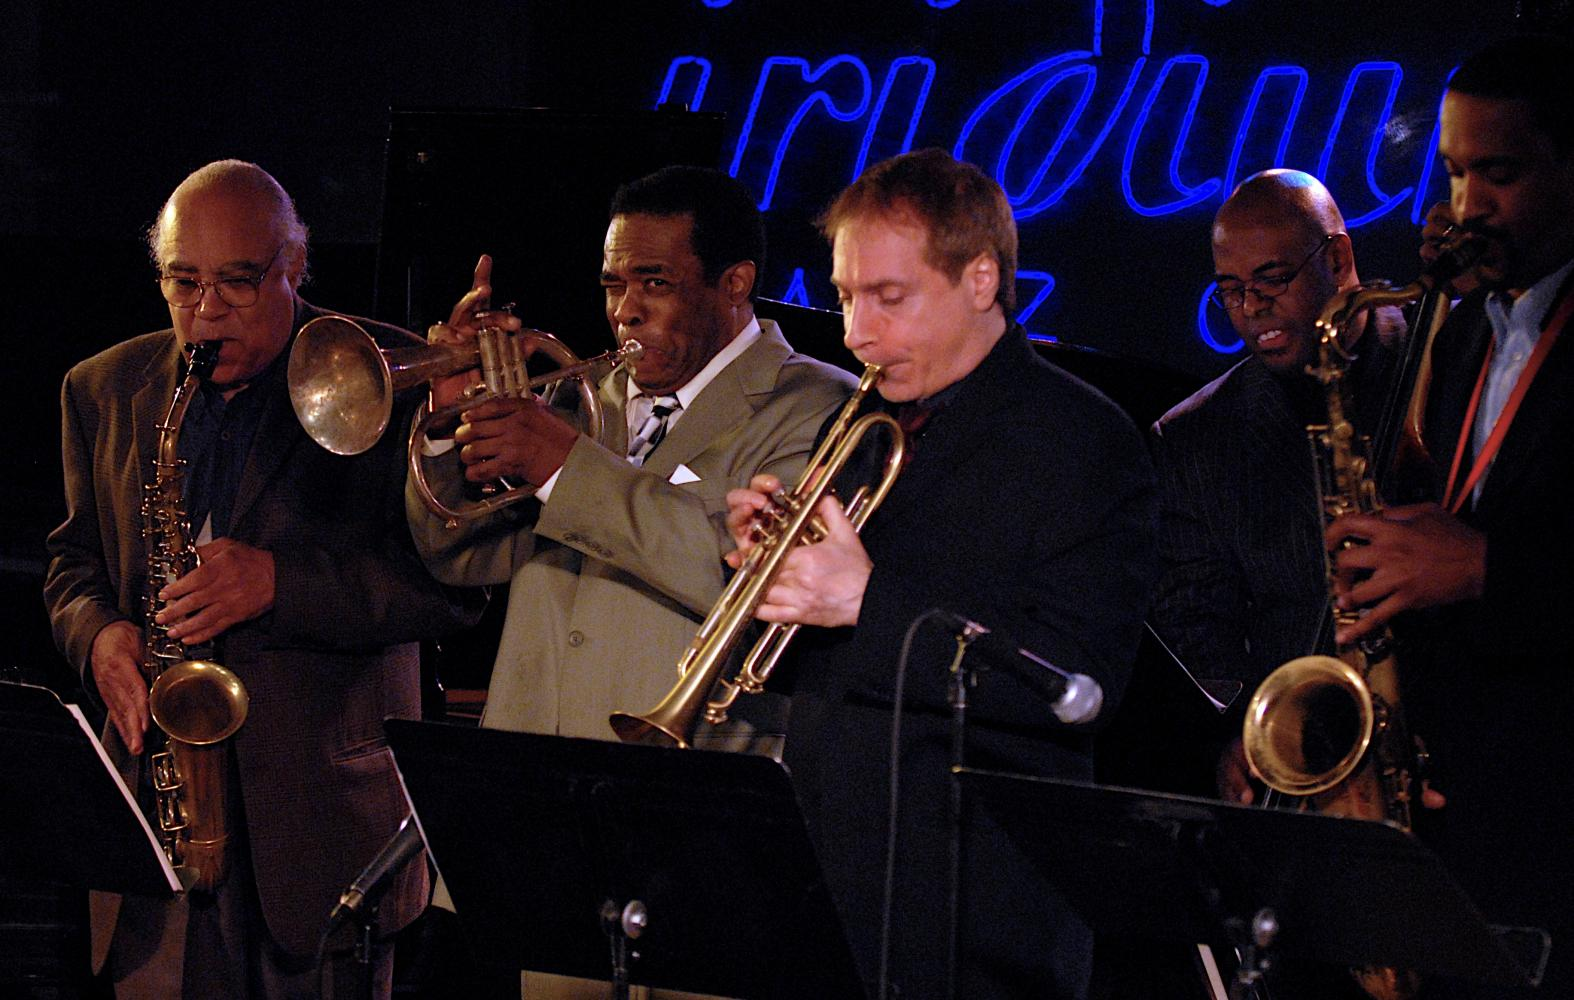 James Spaulding, Freddie Hubbard, David Weiss, Christian Mcbride And Javon Jackson At The Iridium